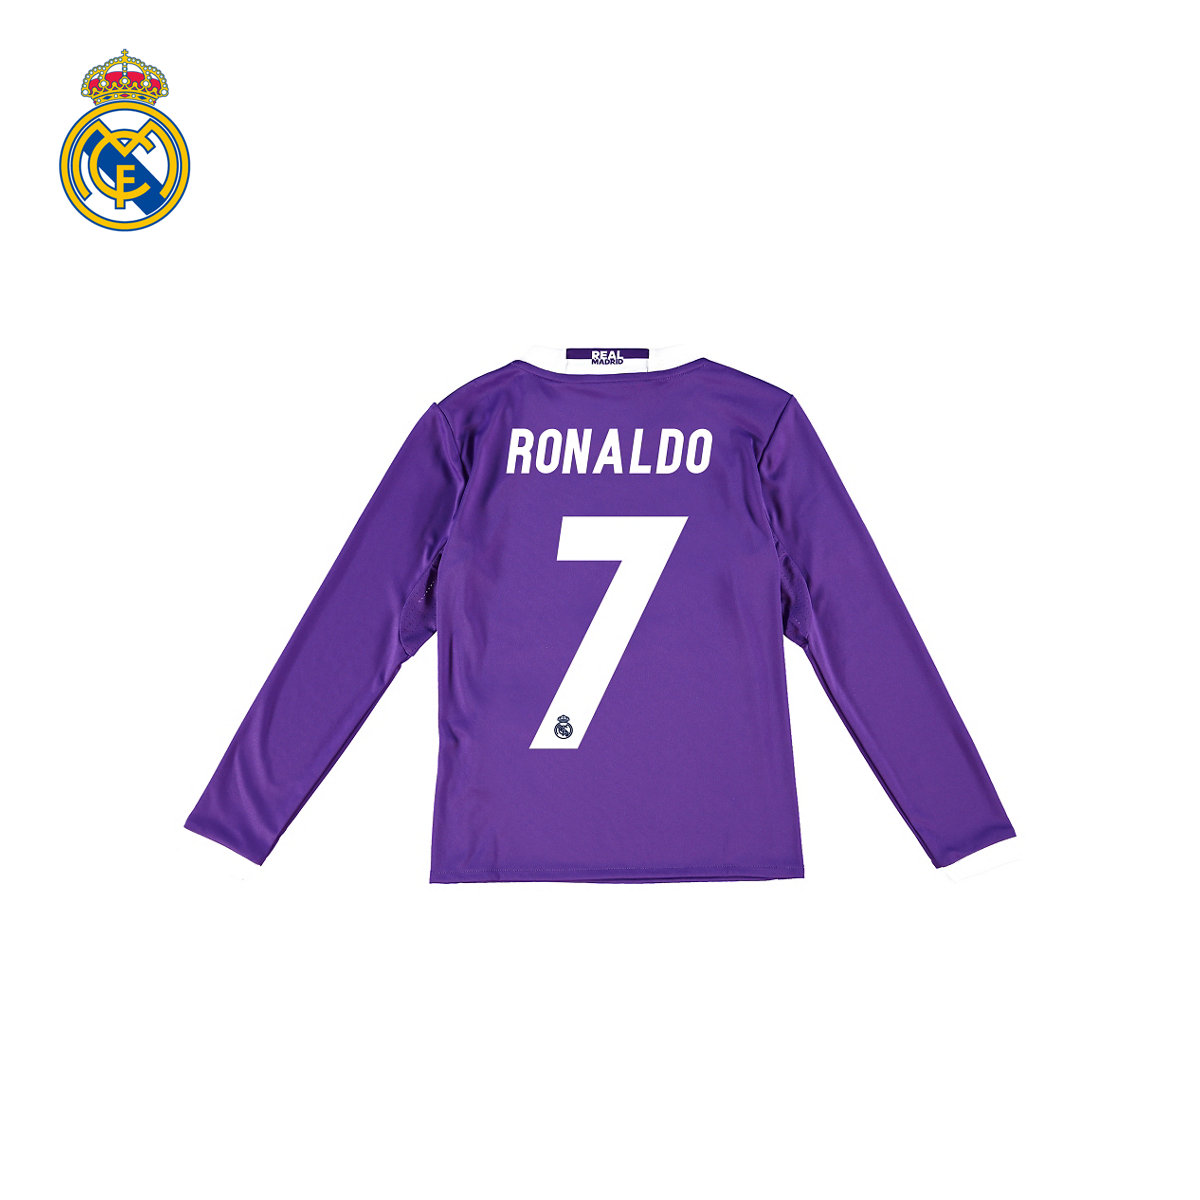 new styles 8540d e1553 cristiano ronaldo away jersey long sleeve